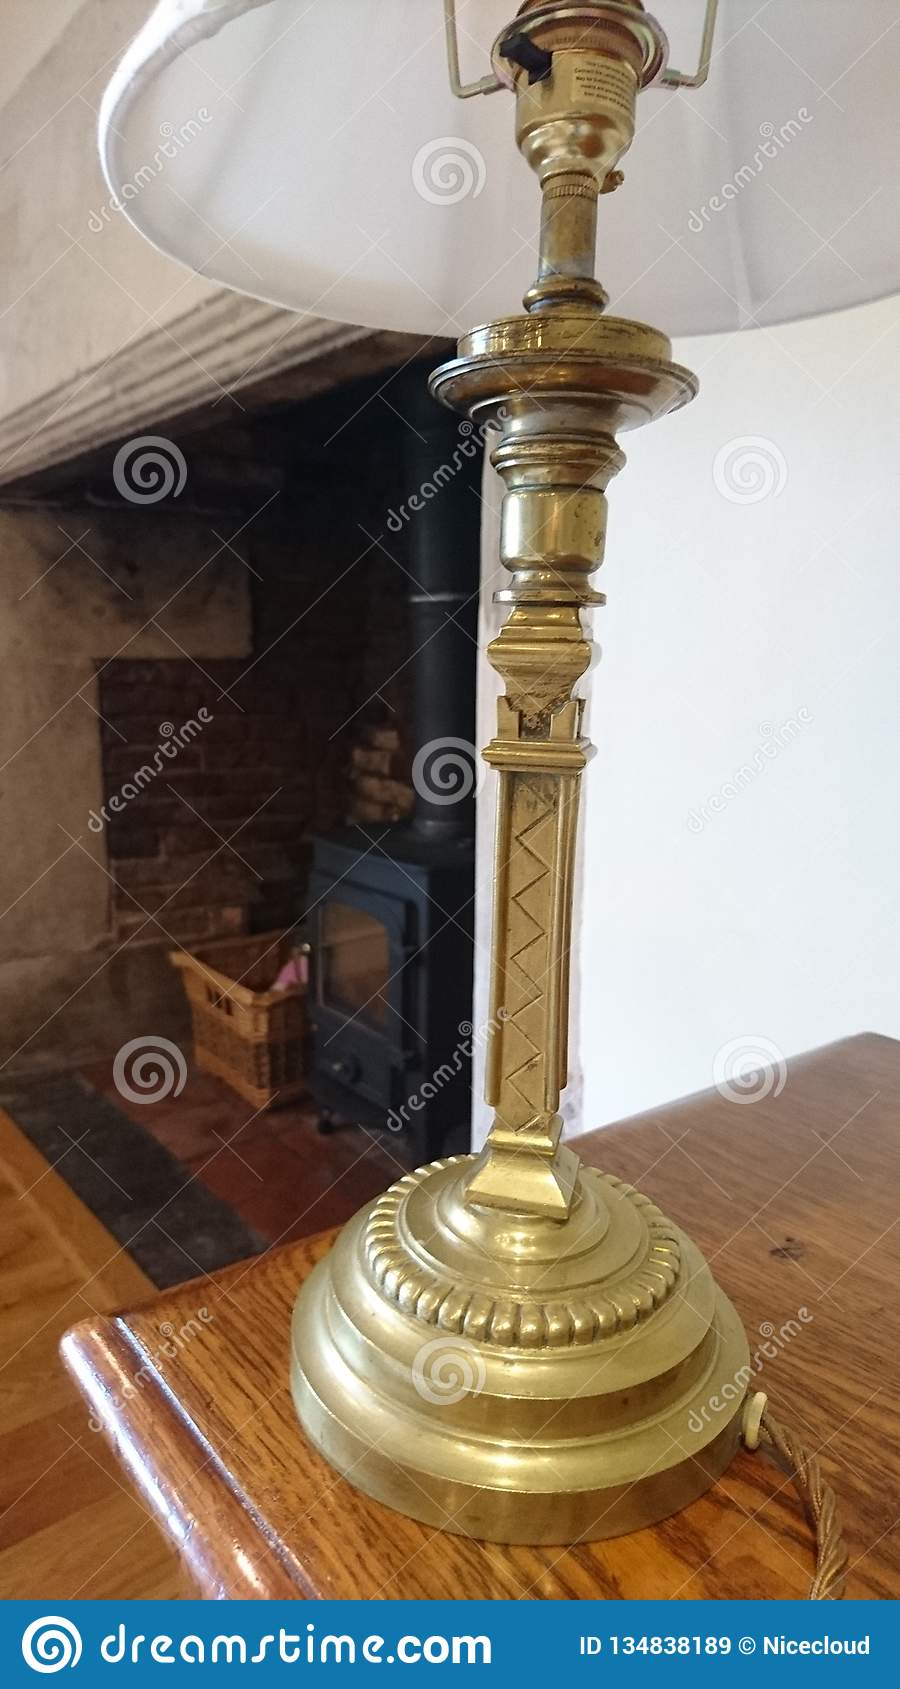 Ornate Antique Brass Table Lamp Close Up Stock Image Image Of Deco Vintage 134838189